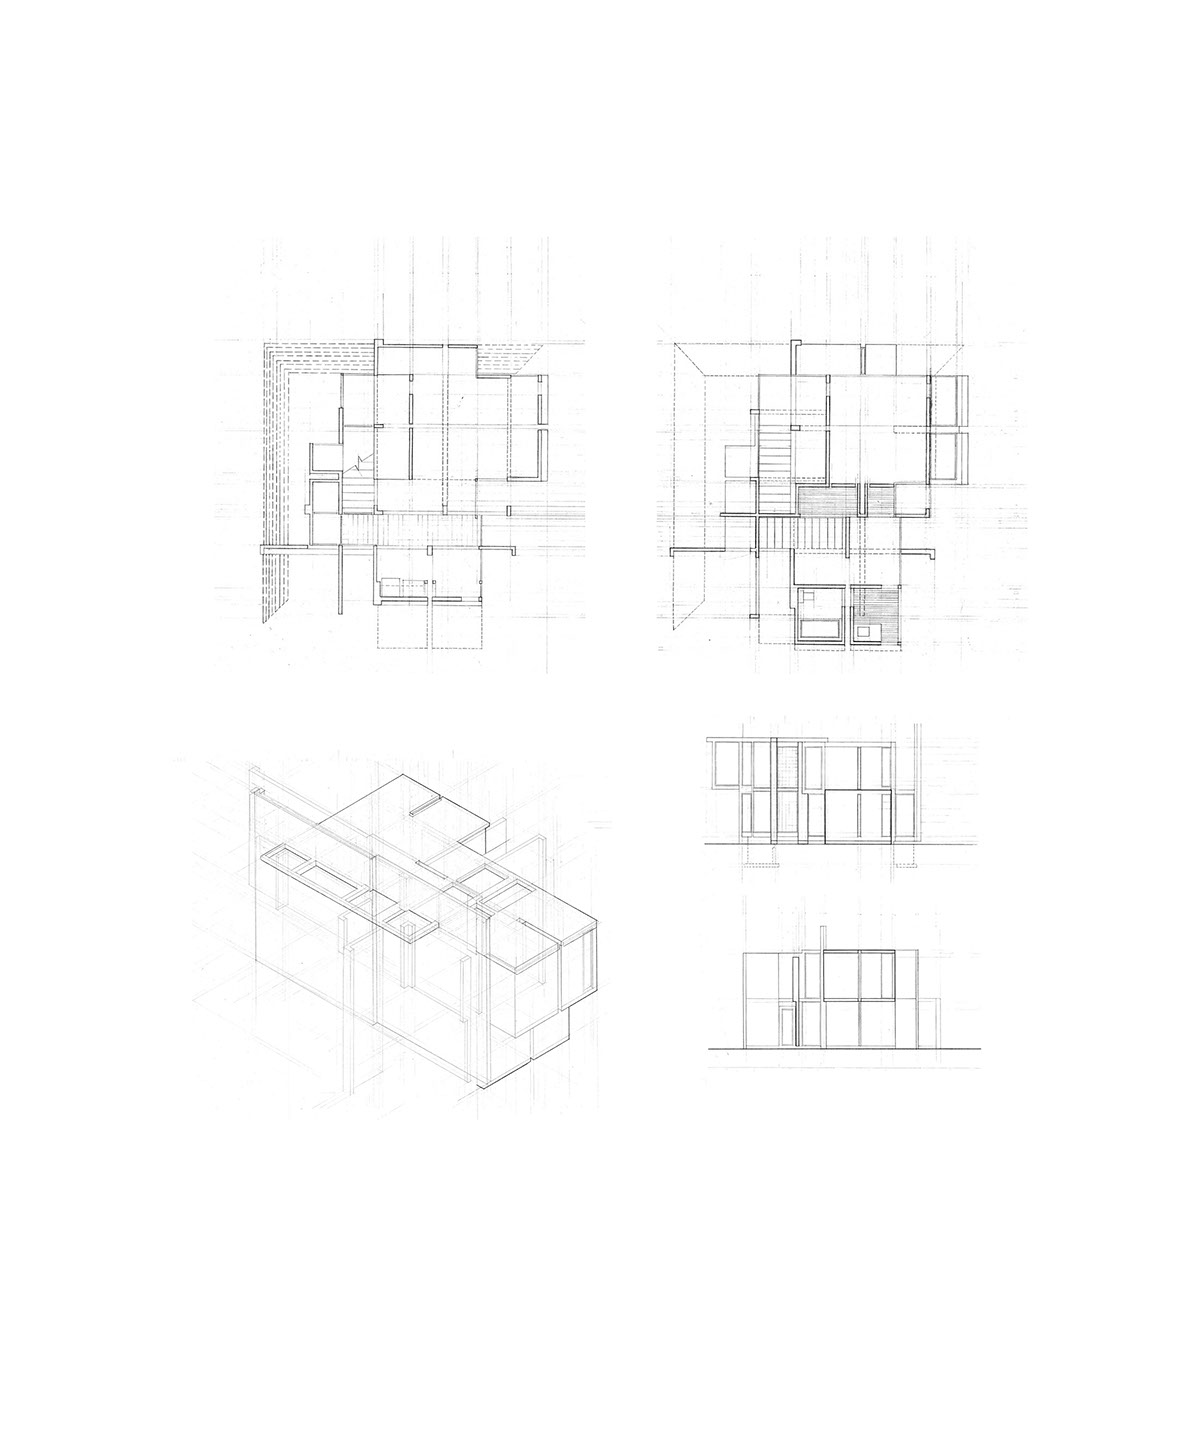 Yzing House Vi By Peter Eisenman On Behance